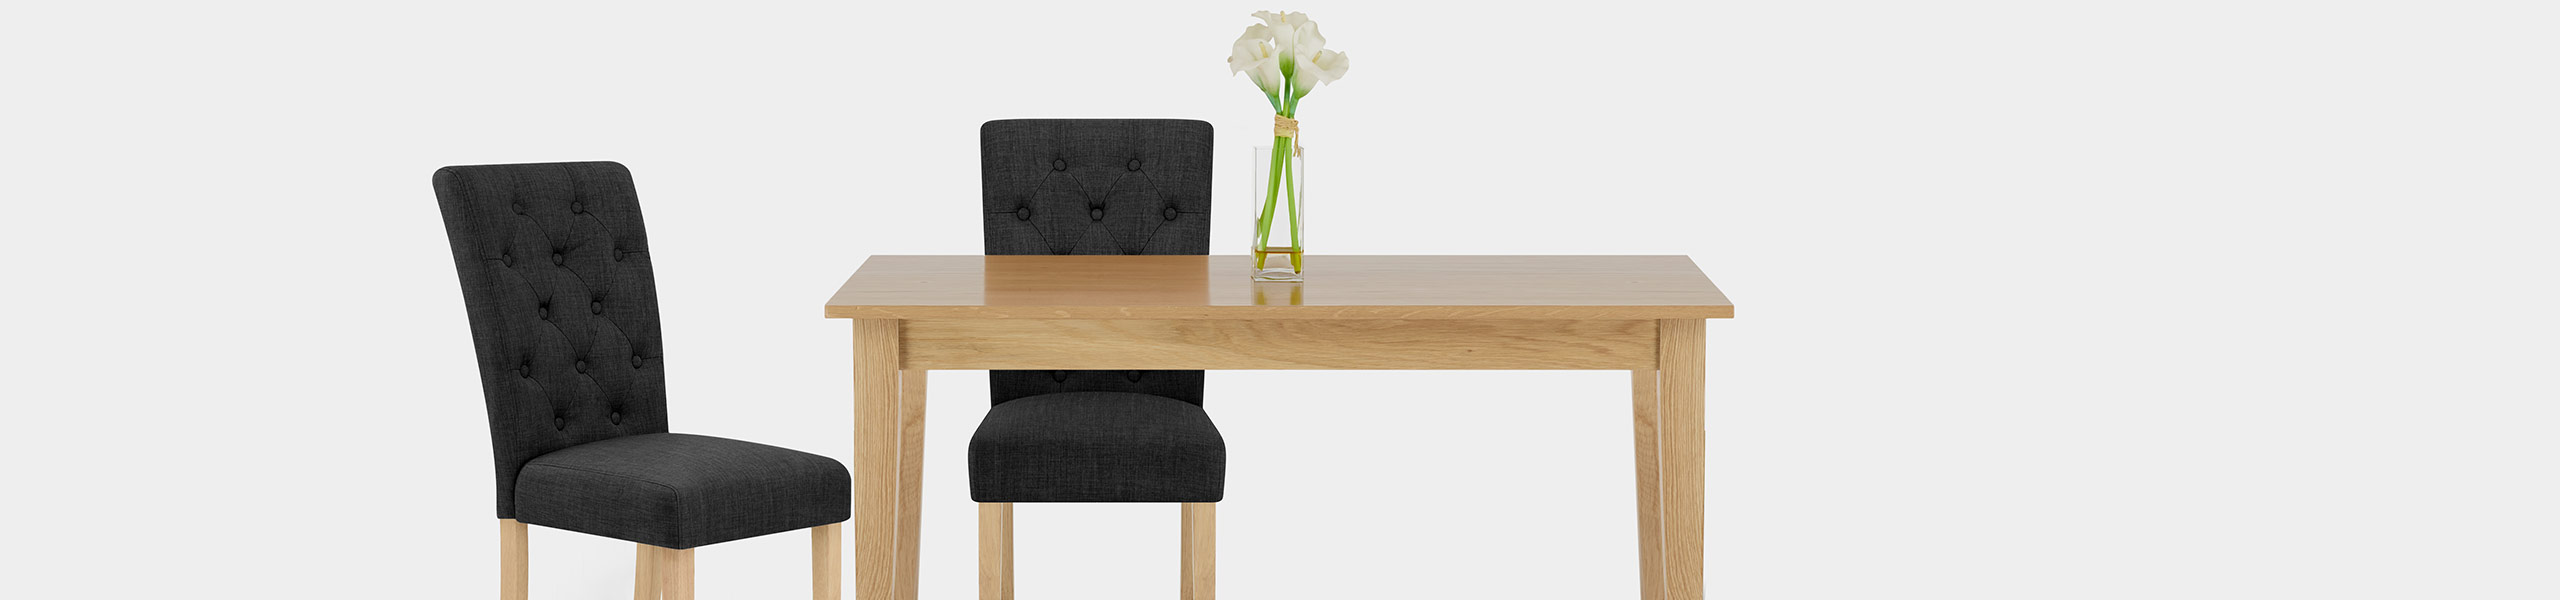 Vigo Chair Oak & Grey Video Banner